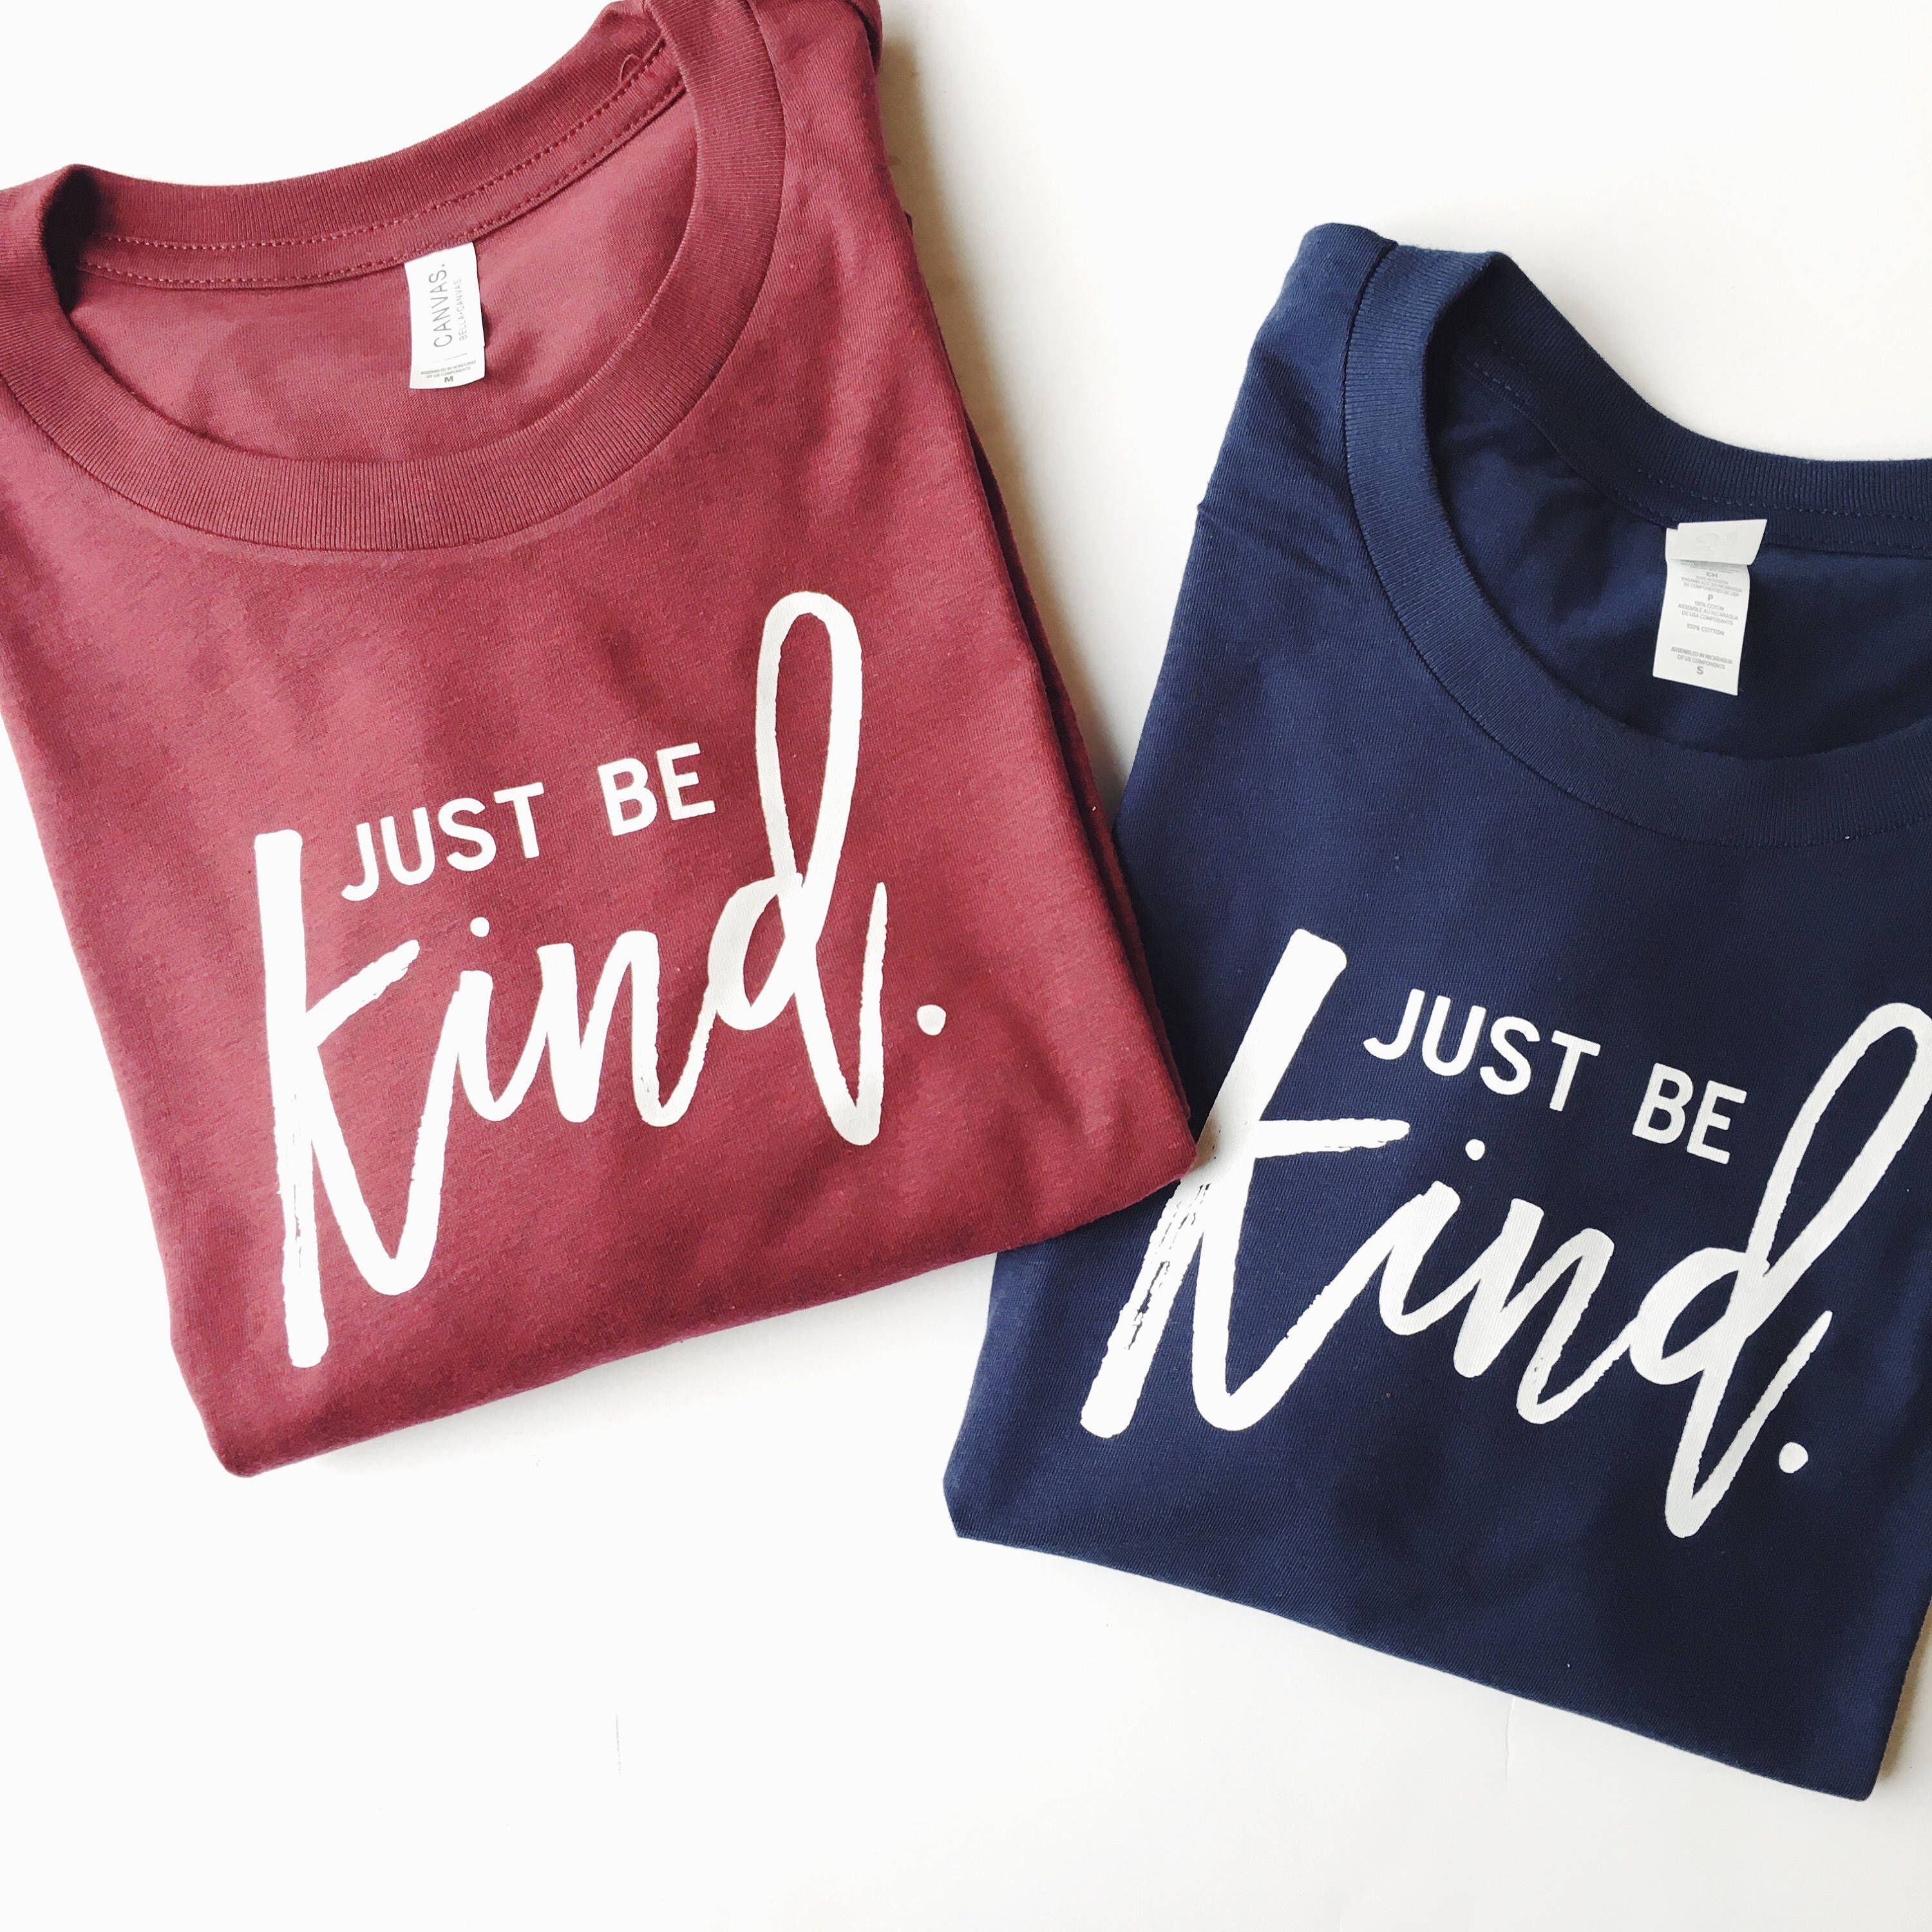 d825284e5 Just Be Kind © THE ORIGINAL | Kindness Matters | Kindness Shirt | Trendy  Tees for